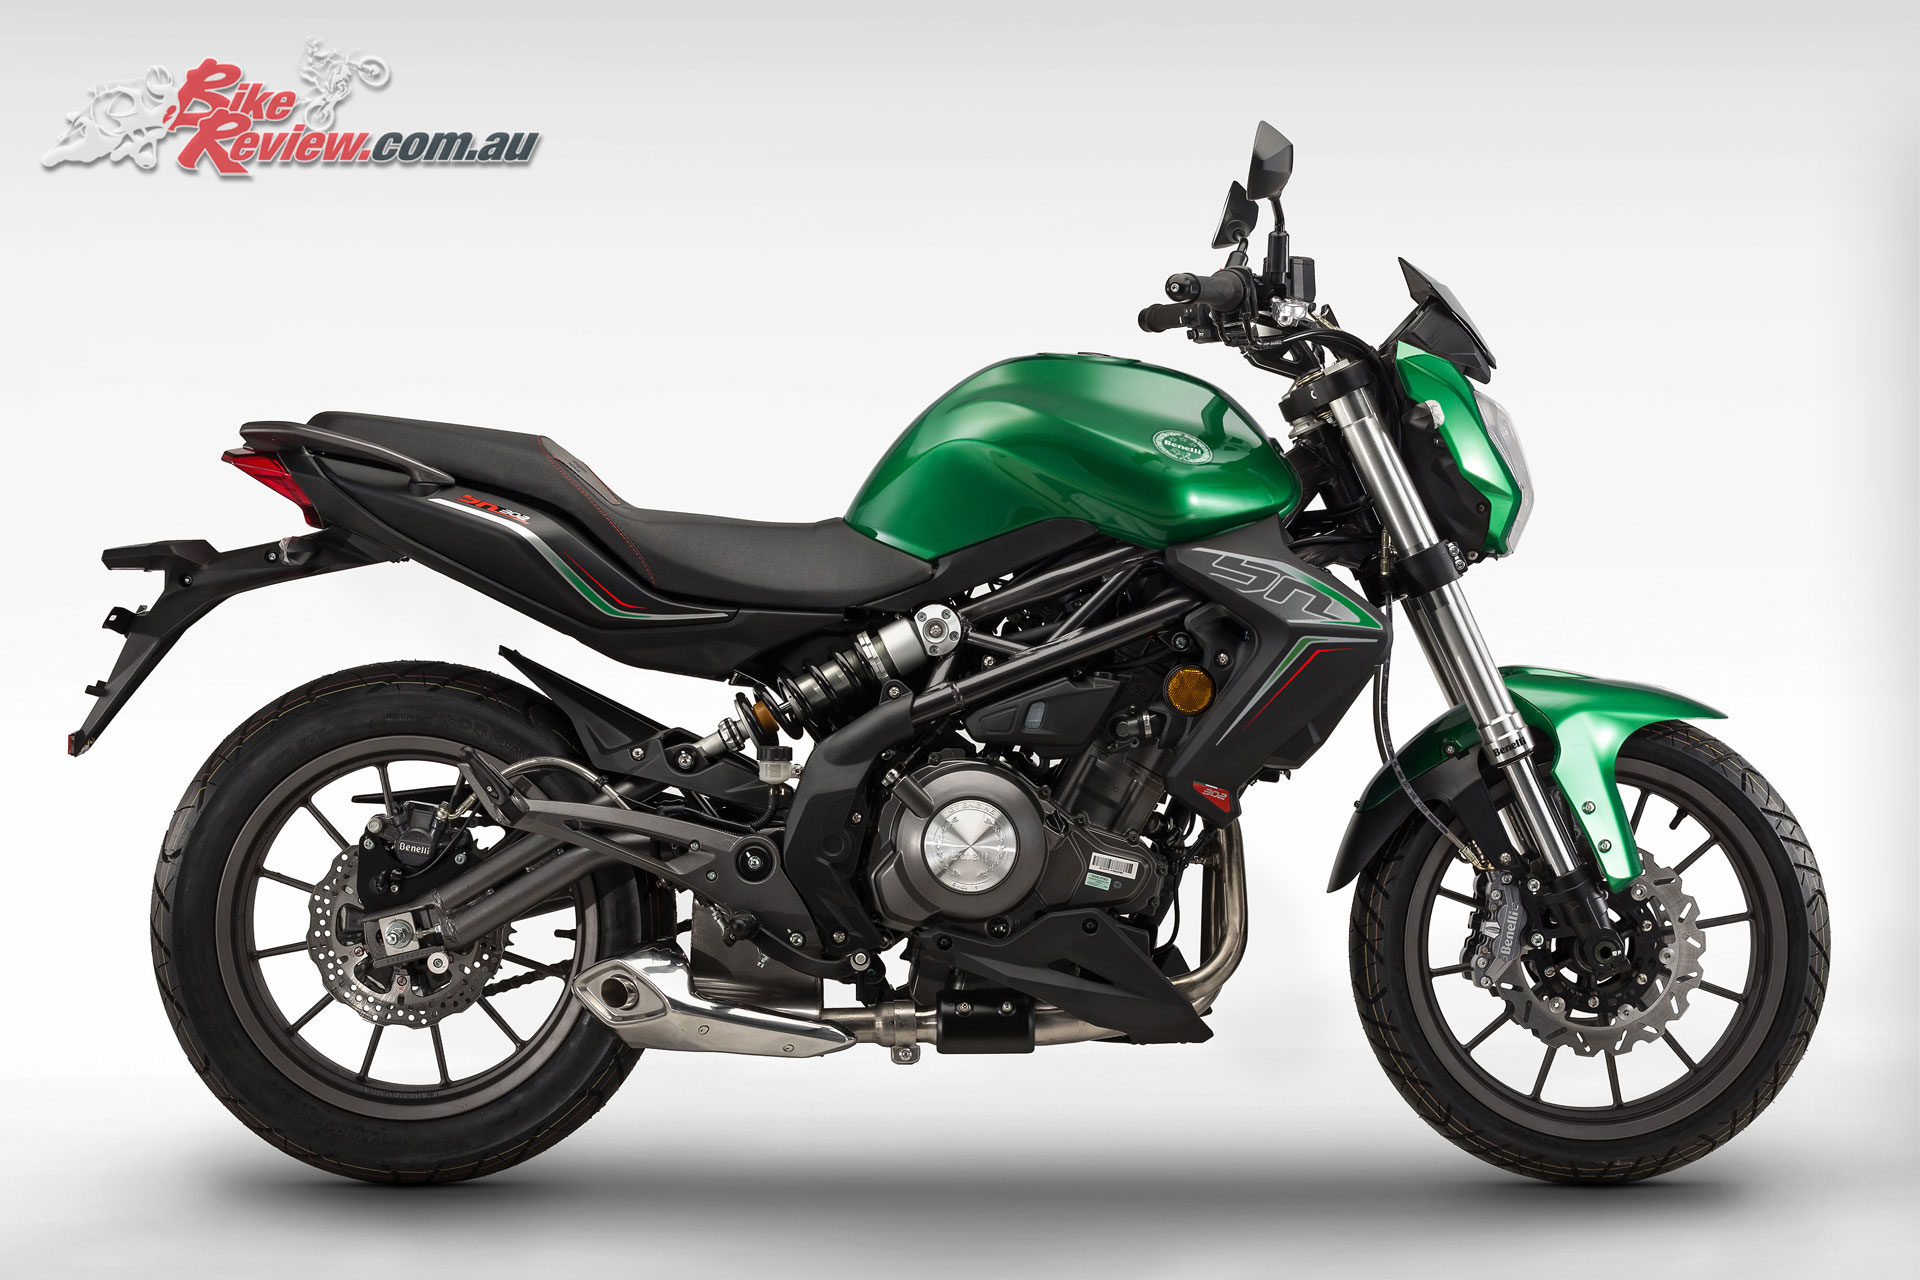 2017 Benelli BN302 announced with ABS standard - Bike Review